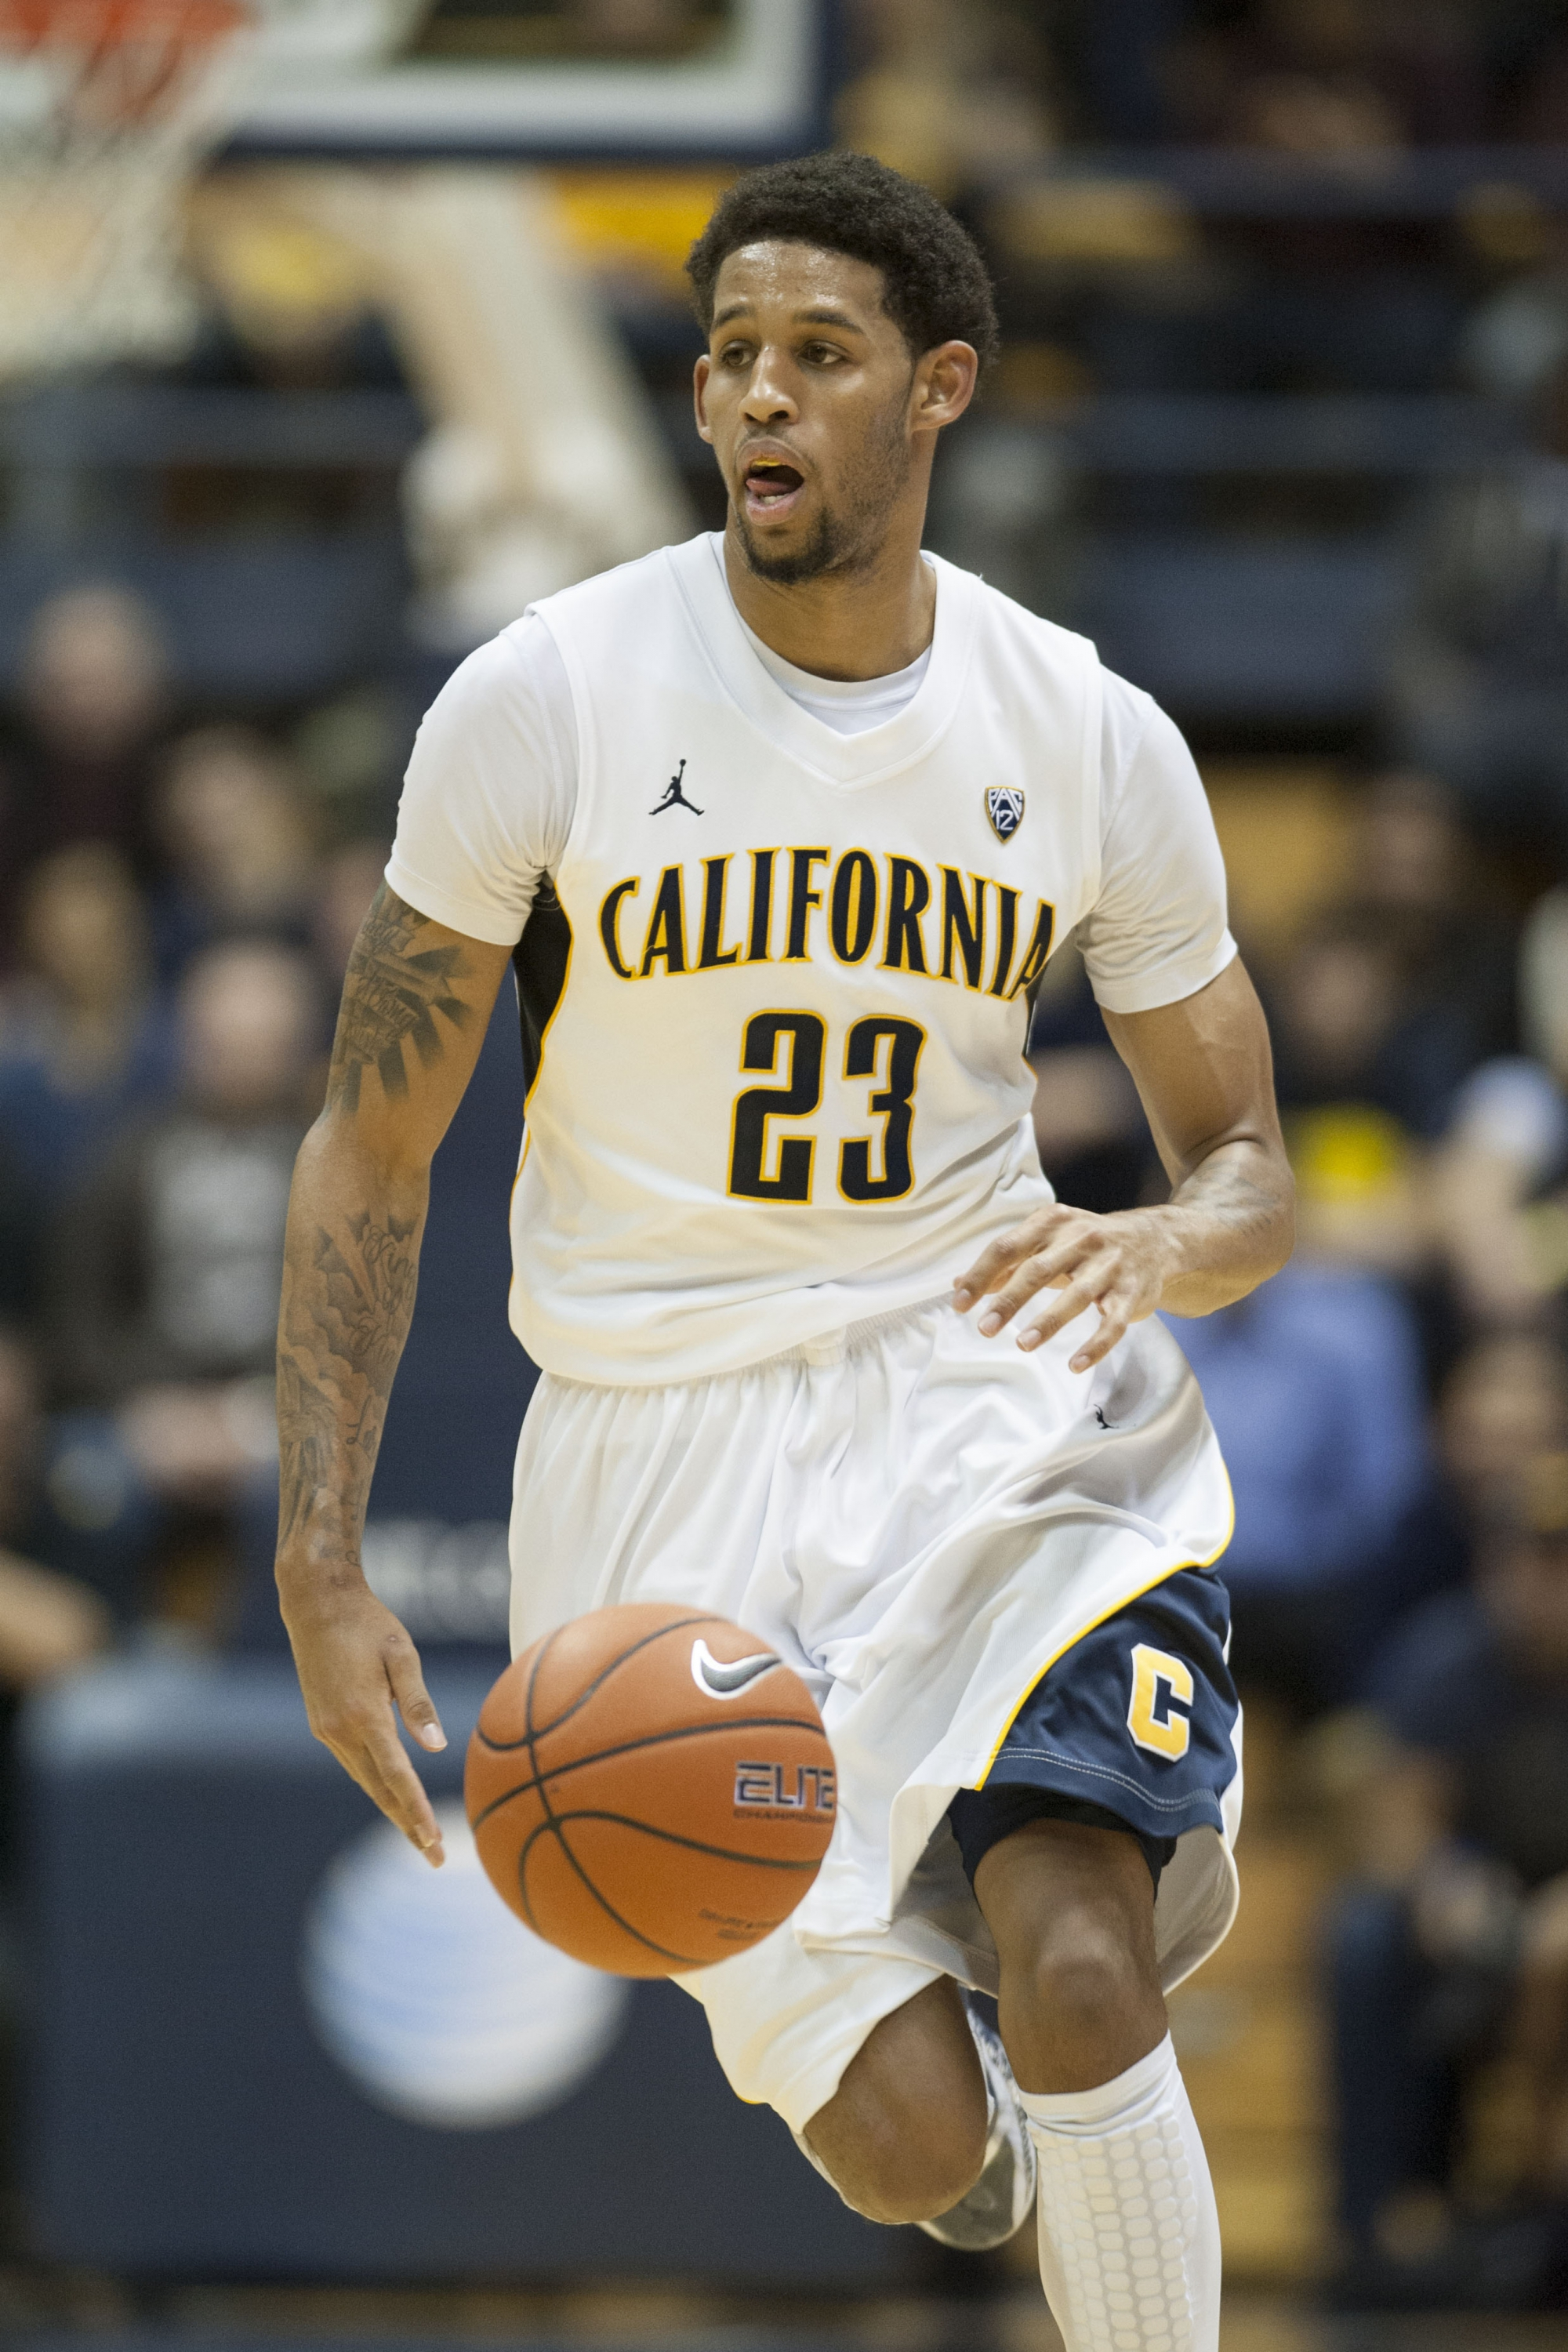 Cal Coach Mike Montgomery Shoves Player